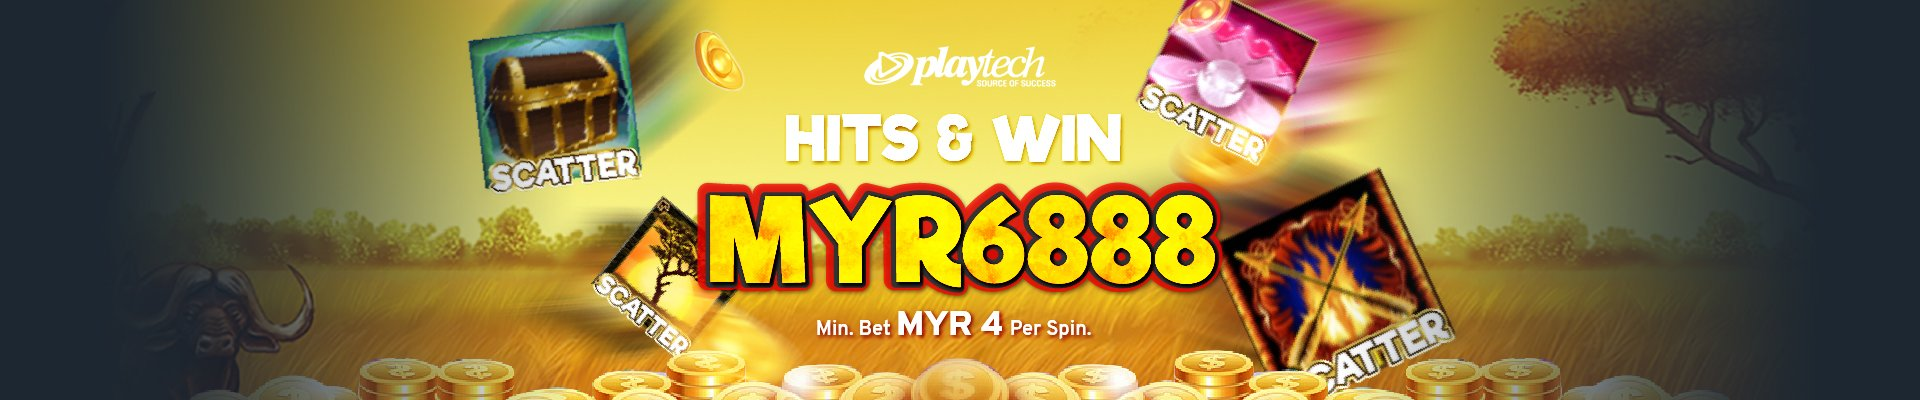 Hits & Win MYR6,888 Scatter Slots Malaysia 2021